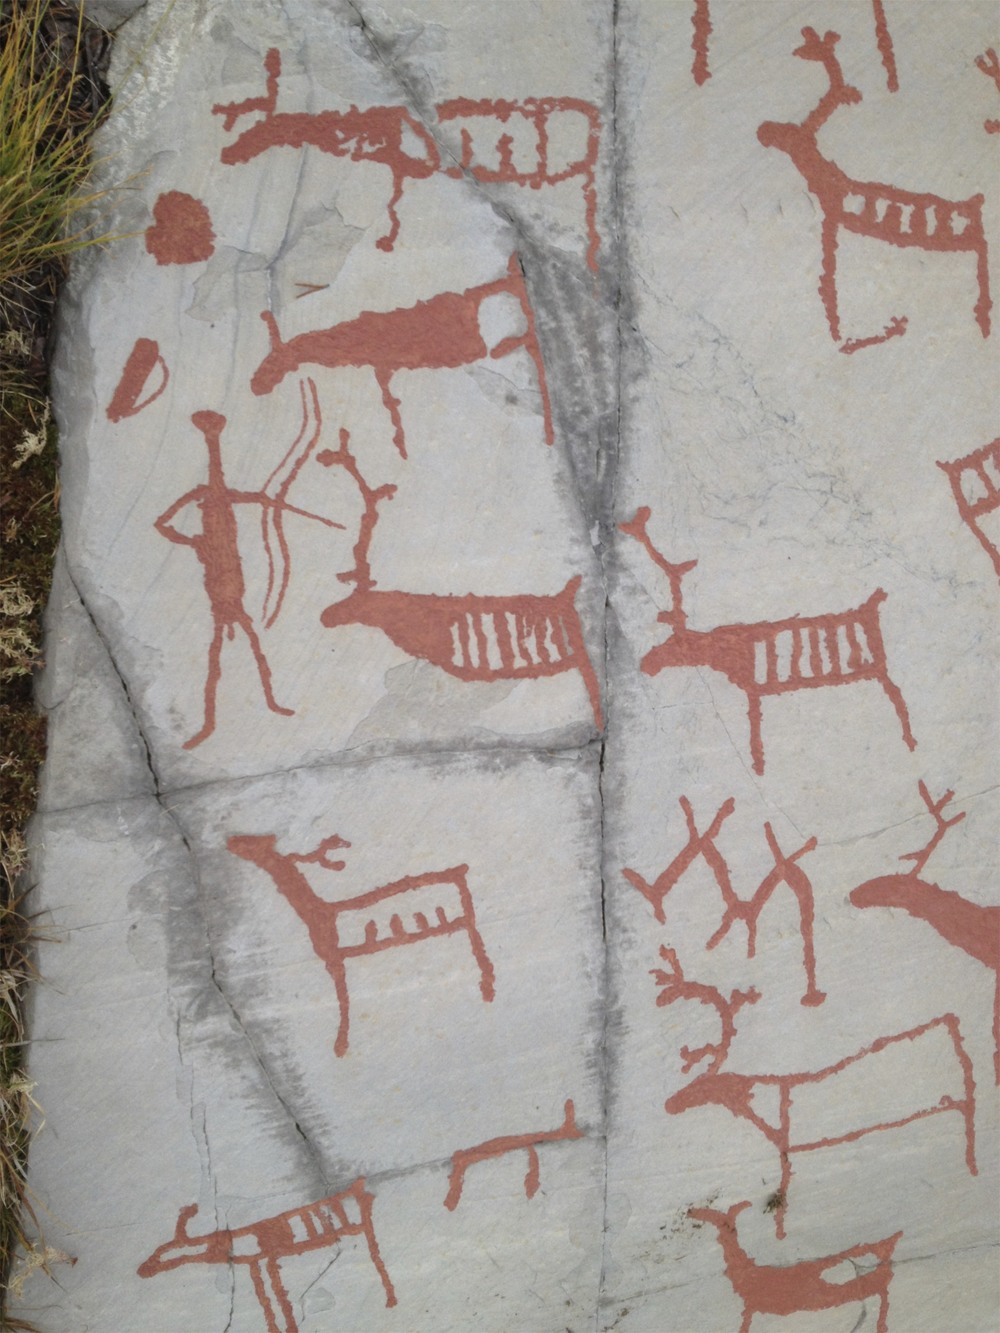 rock carvings Alta, Norway